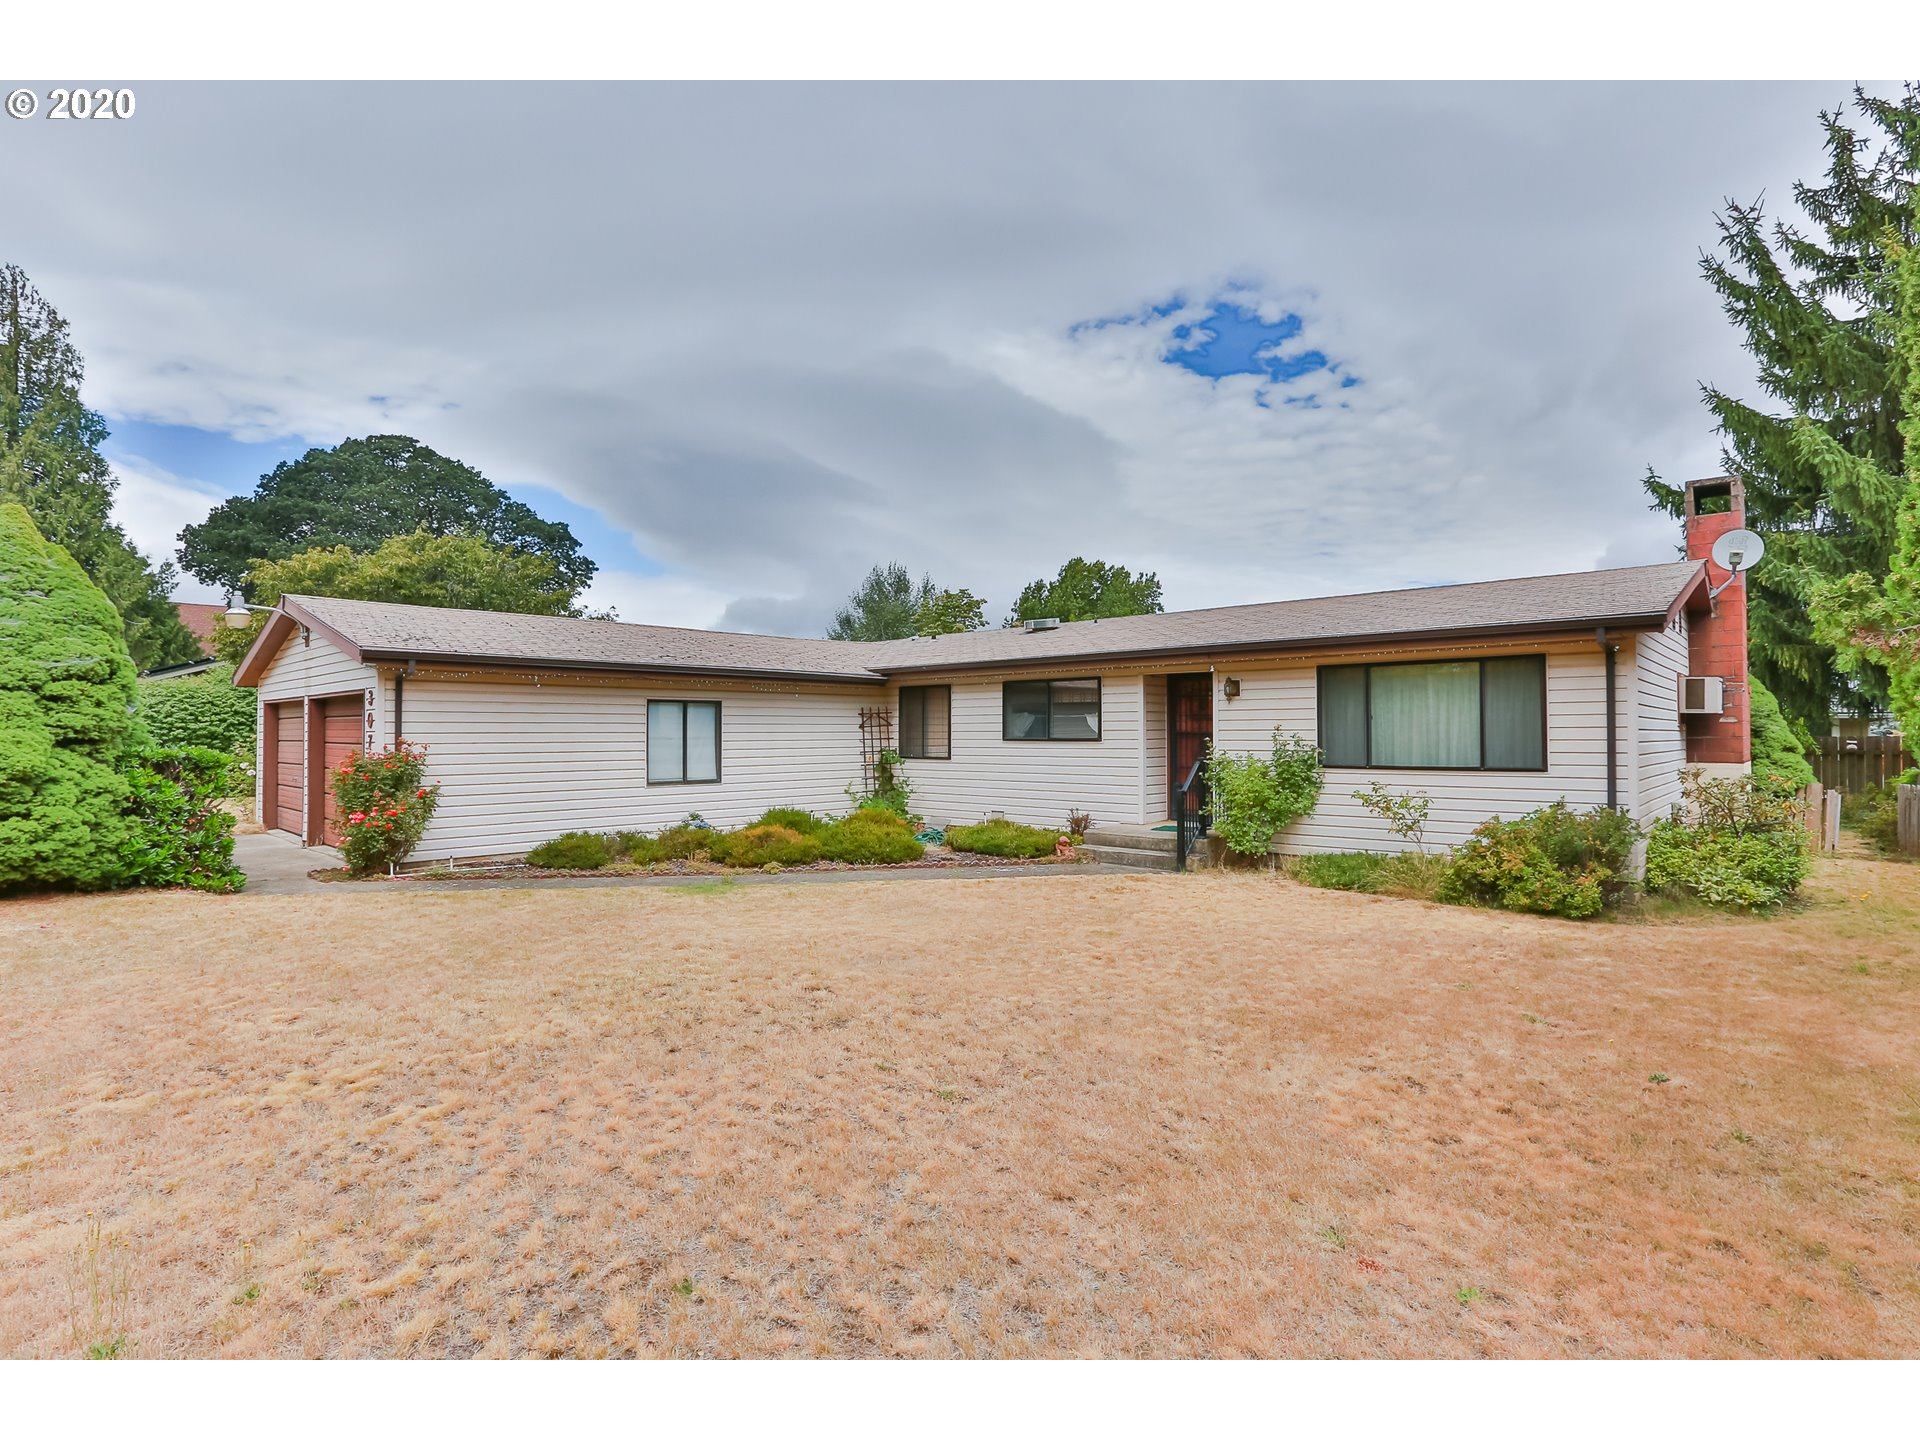 Photo of 3072 ELIOT DR Hood River OR 97031